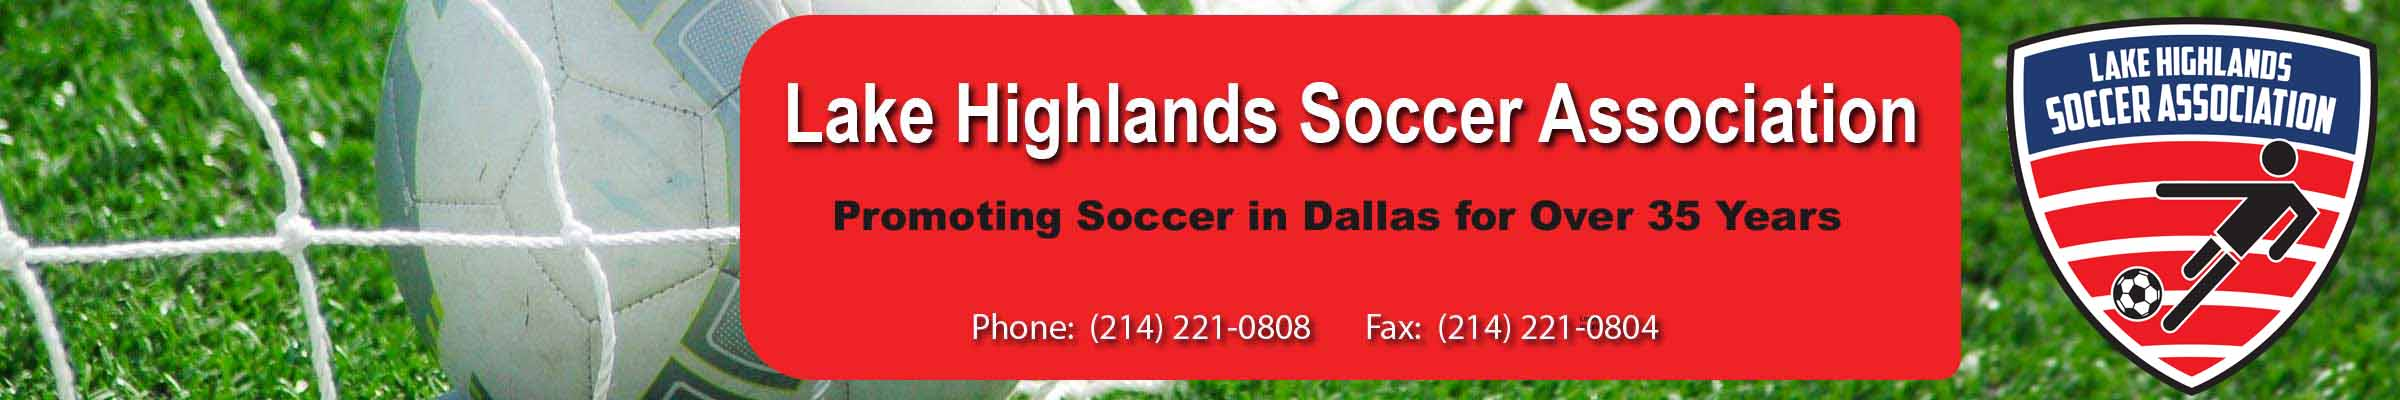 Highland Soccer Association